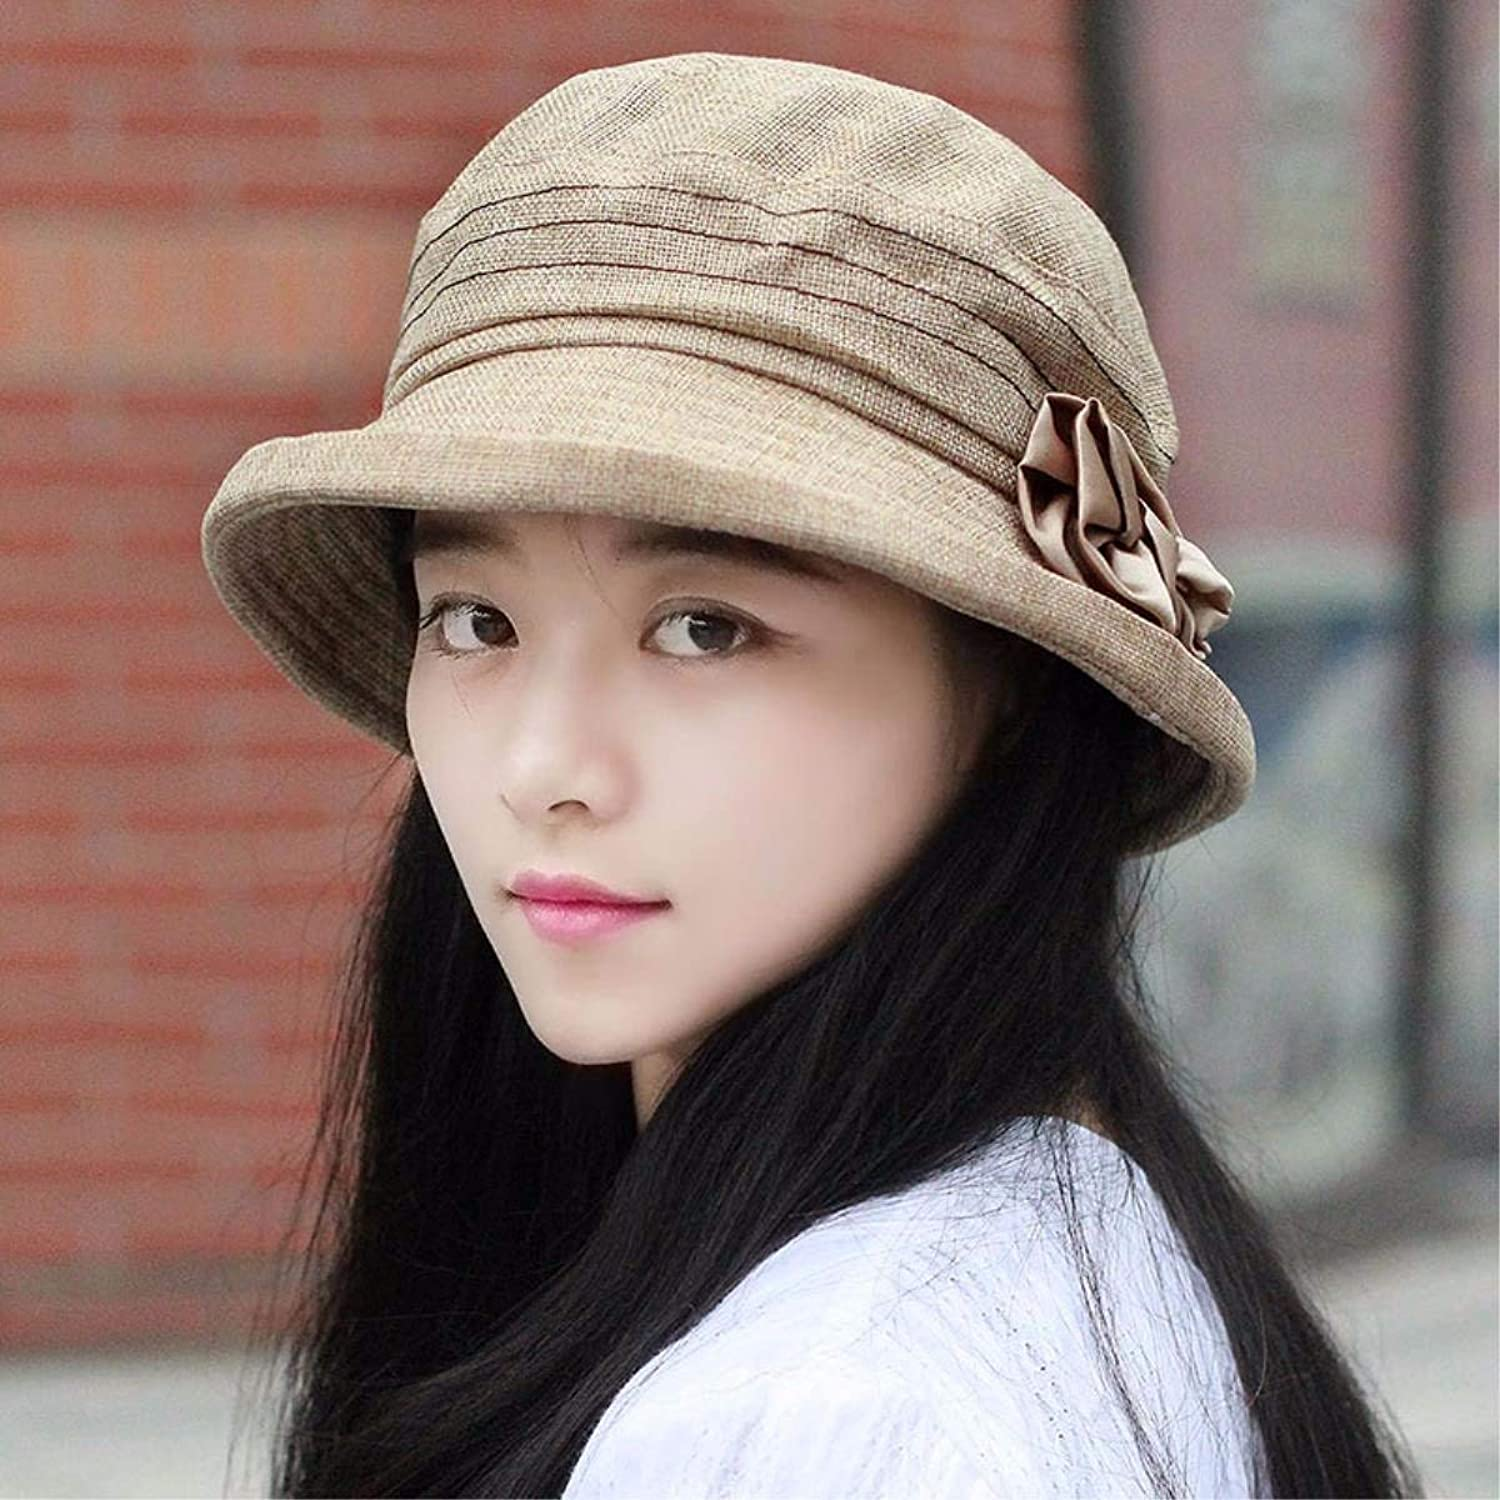 Beach Hat The Spring and Summer Thin Section Breathable lace Scarf hat Pregnant Women Cap Water Drill Set Head air Conditioning Cap dust Cap Storehouse Summer Sun Hat (color   Brown)